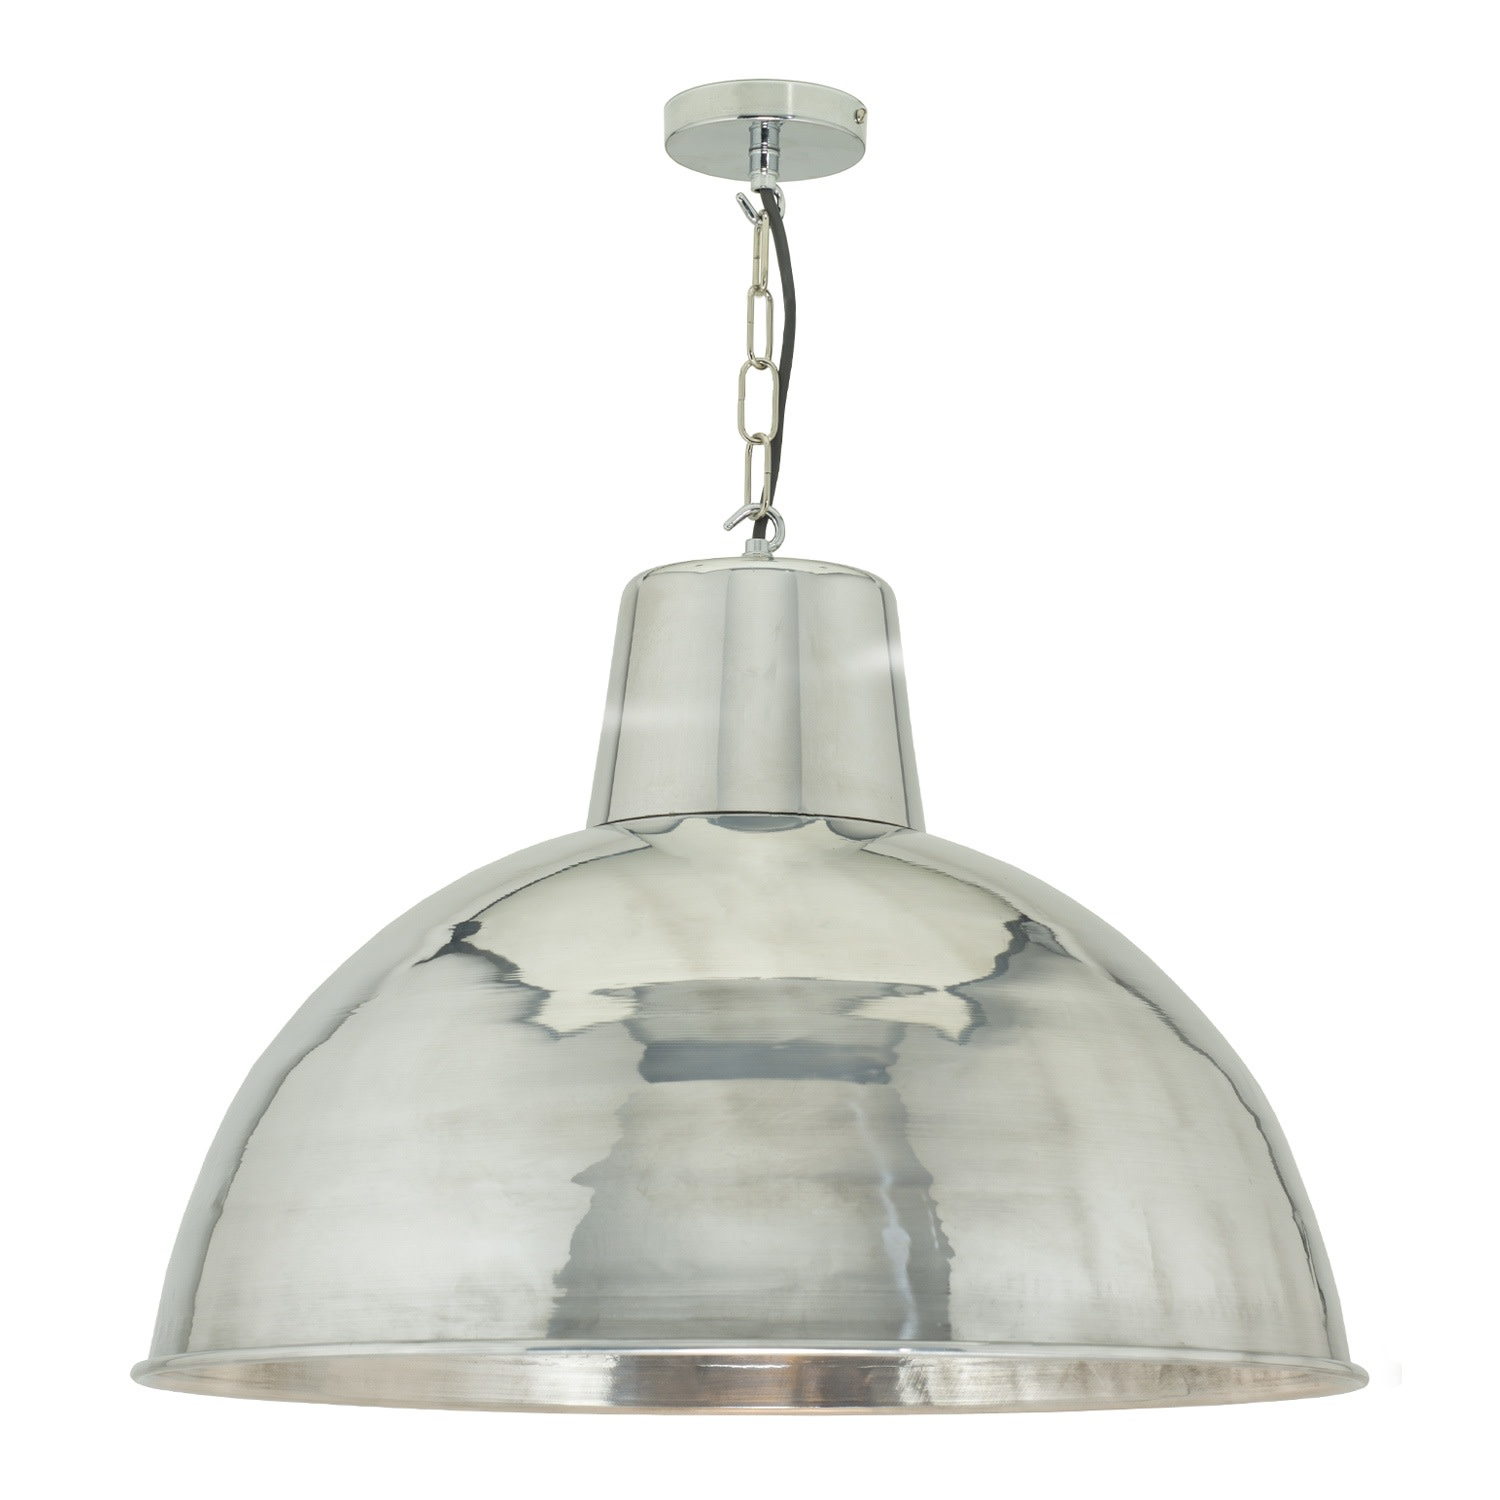 Spun Reflector Pendant Light Polished Aluminium, Large